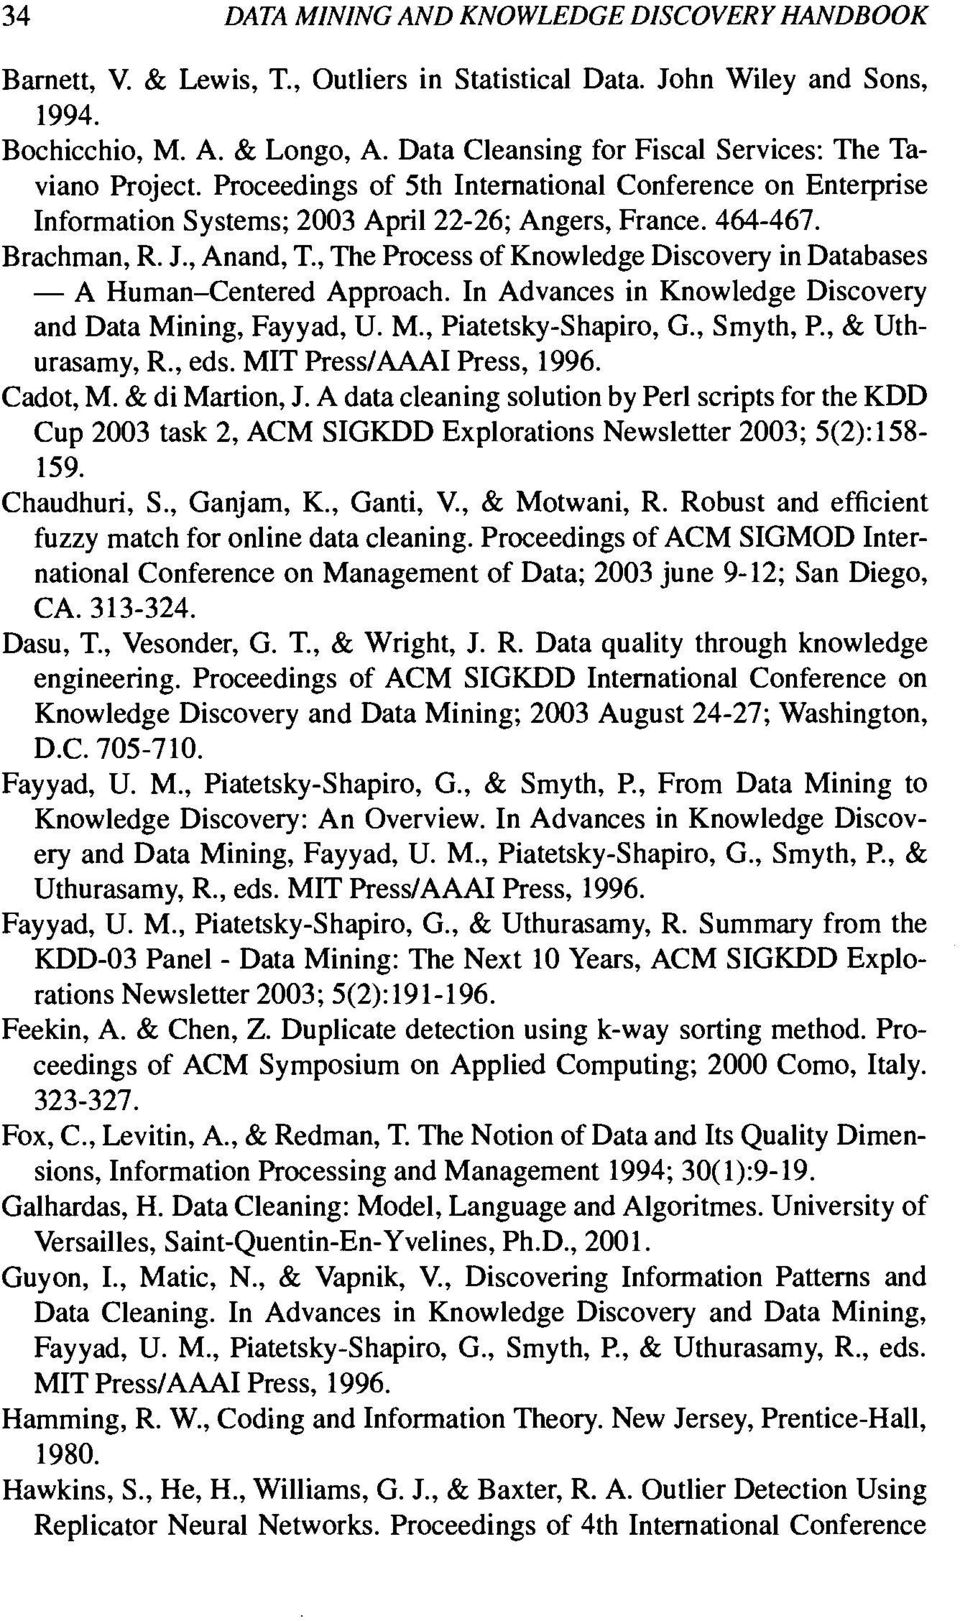 , Anand, T., 1., The Process of Knowledge Discovery in Databases - A Human Centered Human-Centered Approach. In In Advances in Knowledge Discovery and Data Mining, Fayyad, U. M., Piatetsky-Shapiro, G.